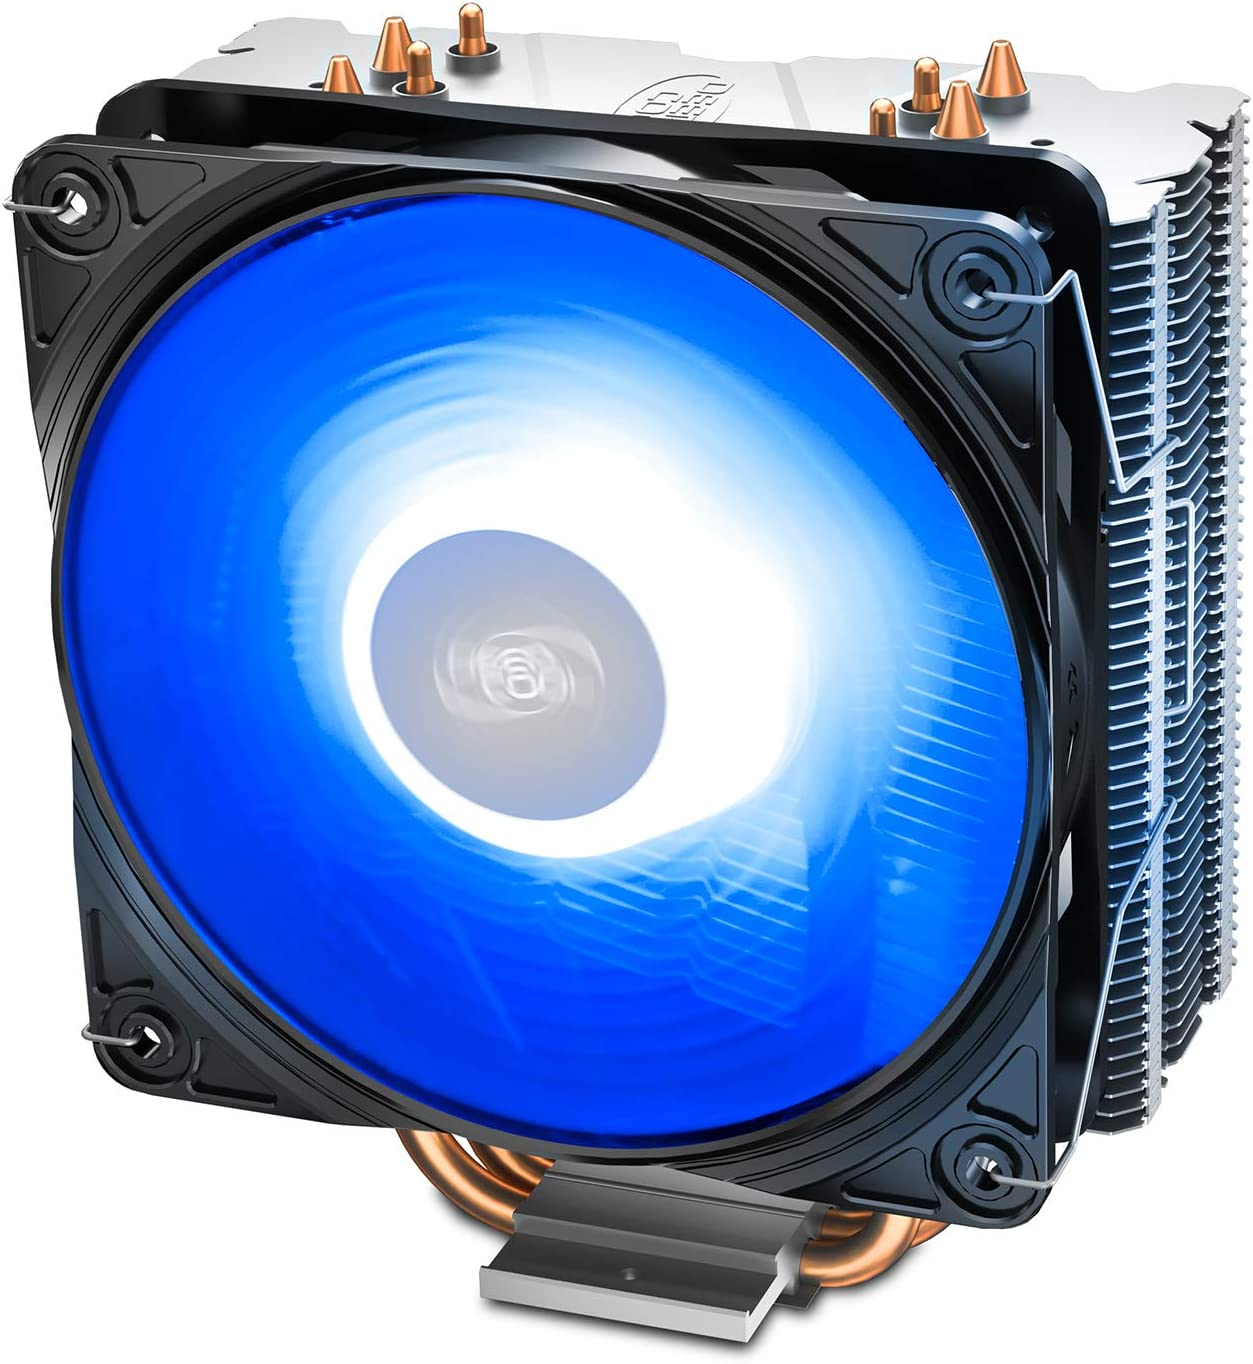 Deep Cool Gammaxx 400 V2 Blue Cpu Cooler With 4 Computers Accessories